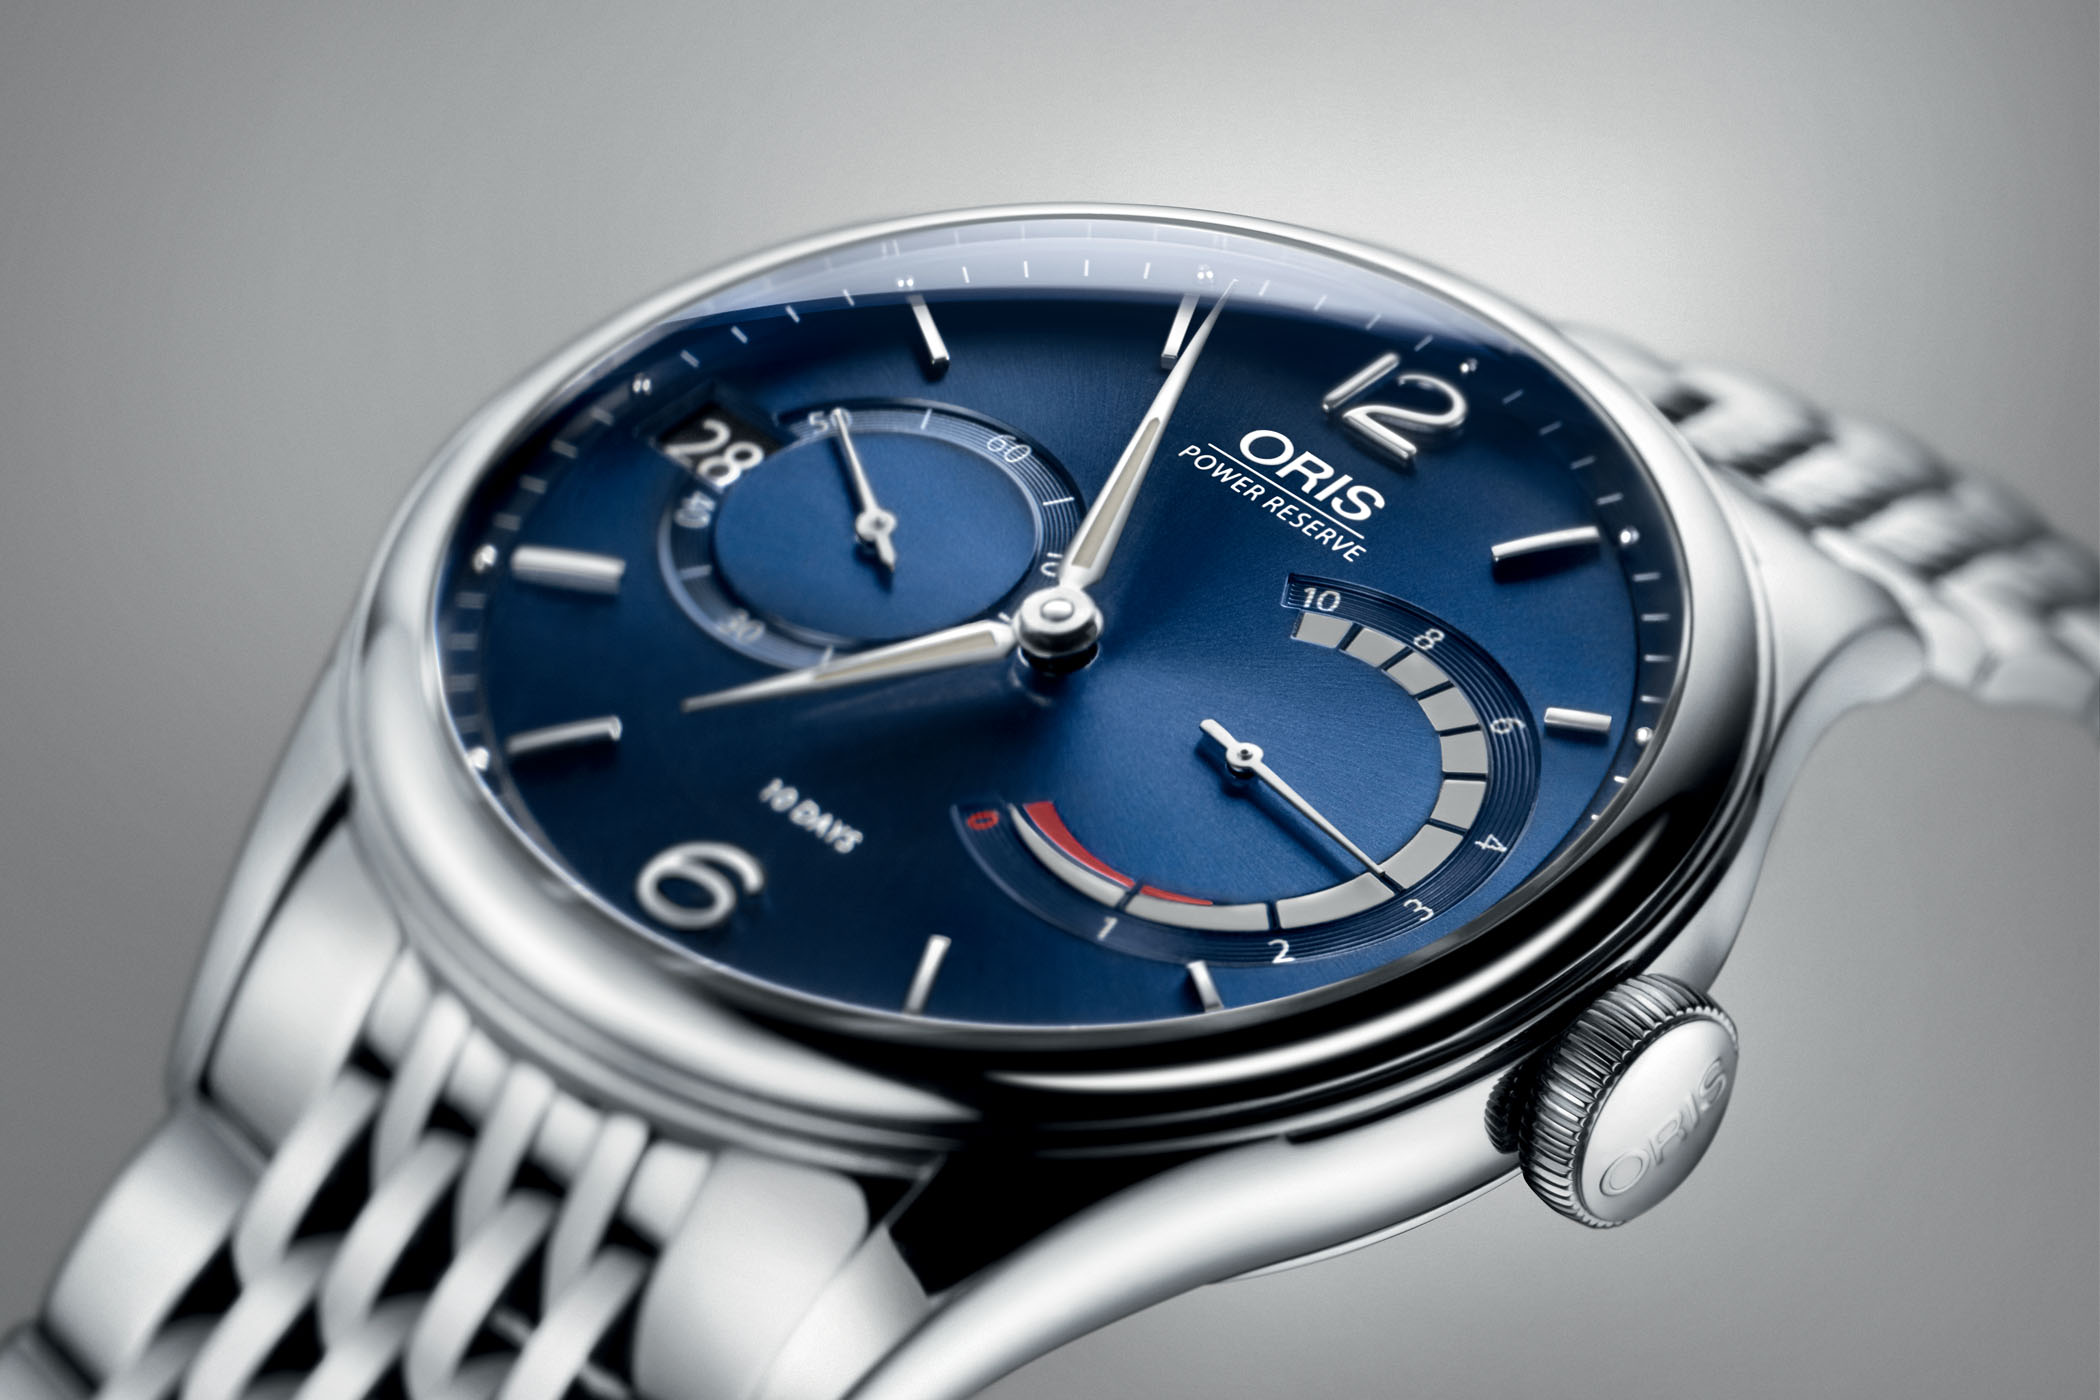 92837f415 Introducing – Oris' In-House 10-Day Artelier Calibre 111 Now with a .